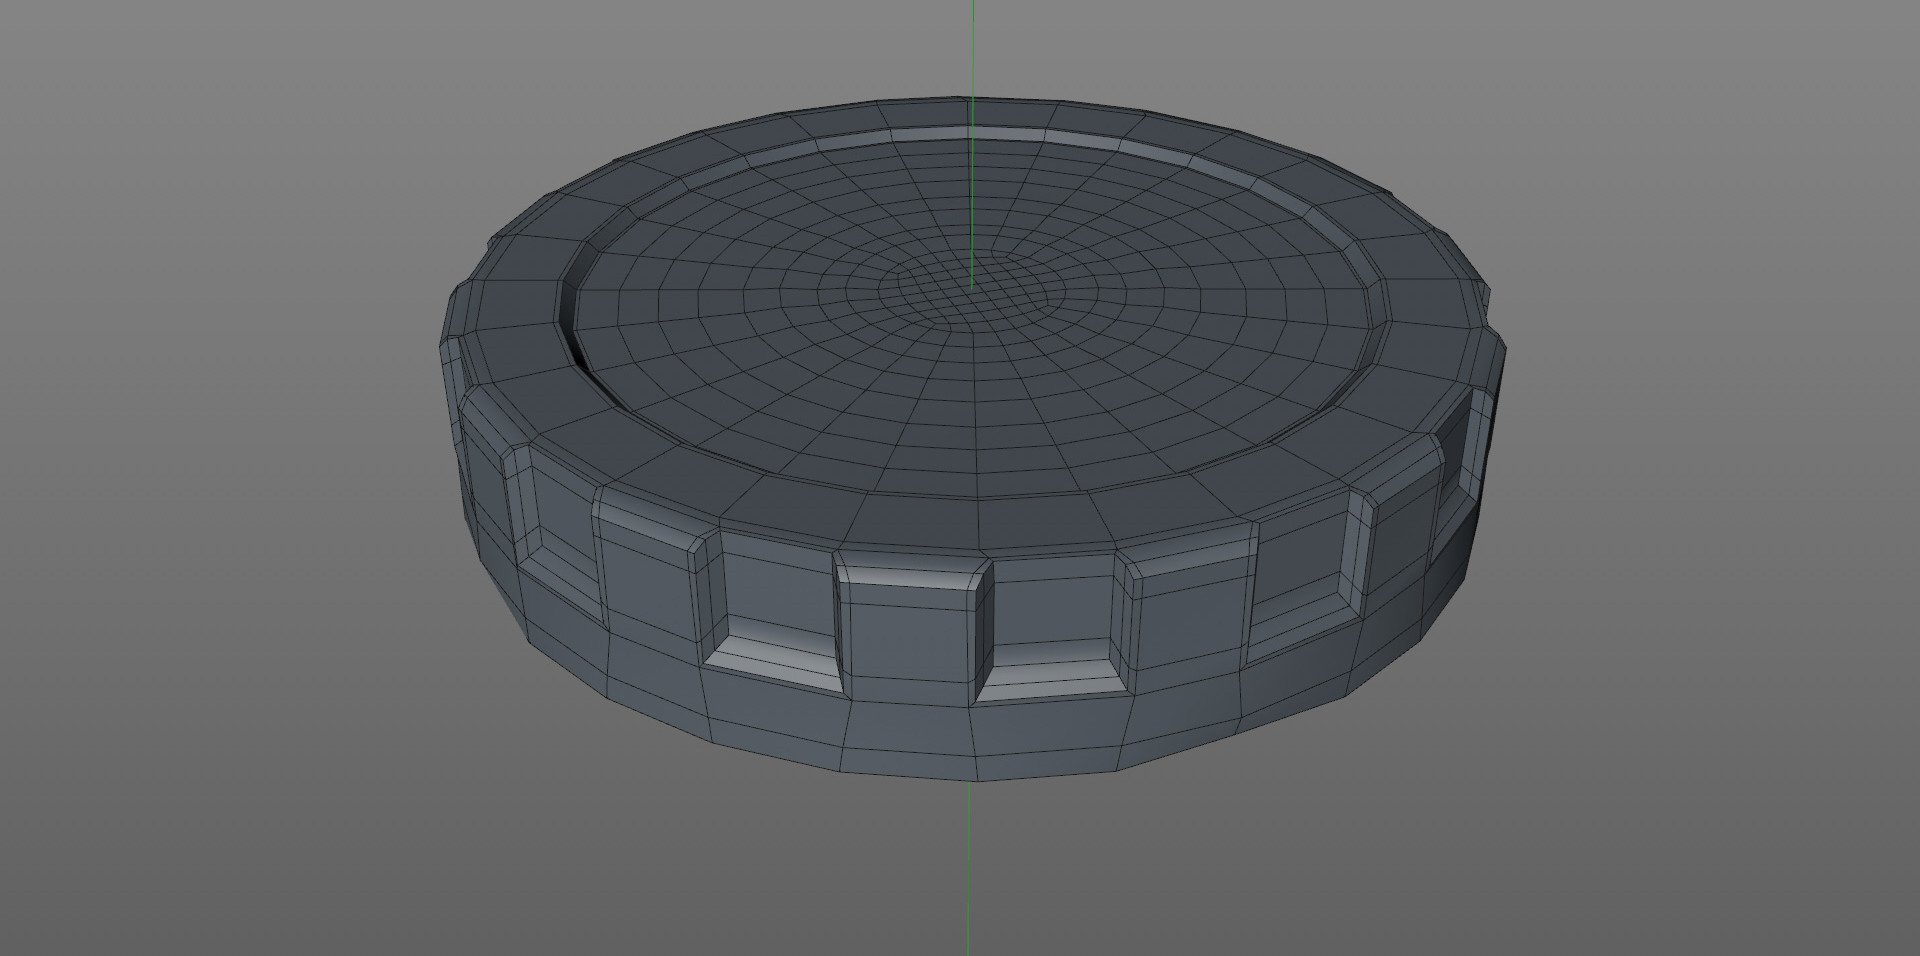 One section of the cap modelled then duplicated using an Array object.